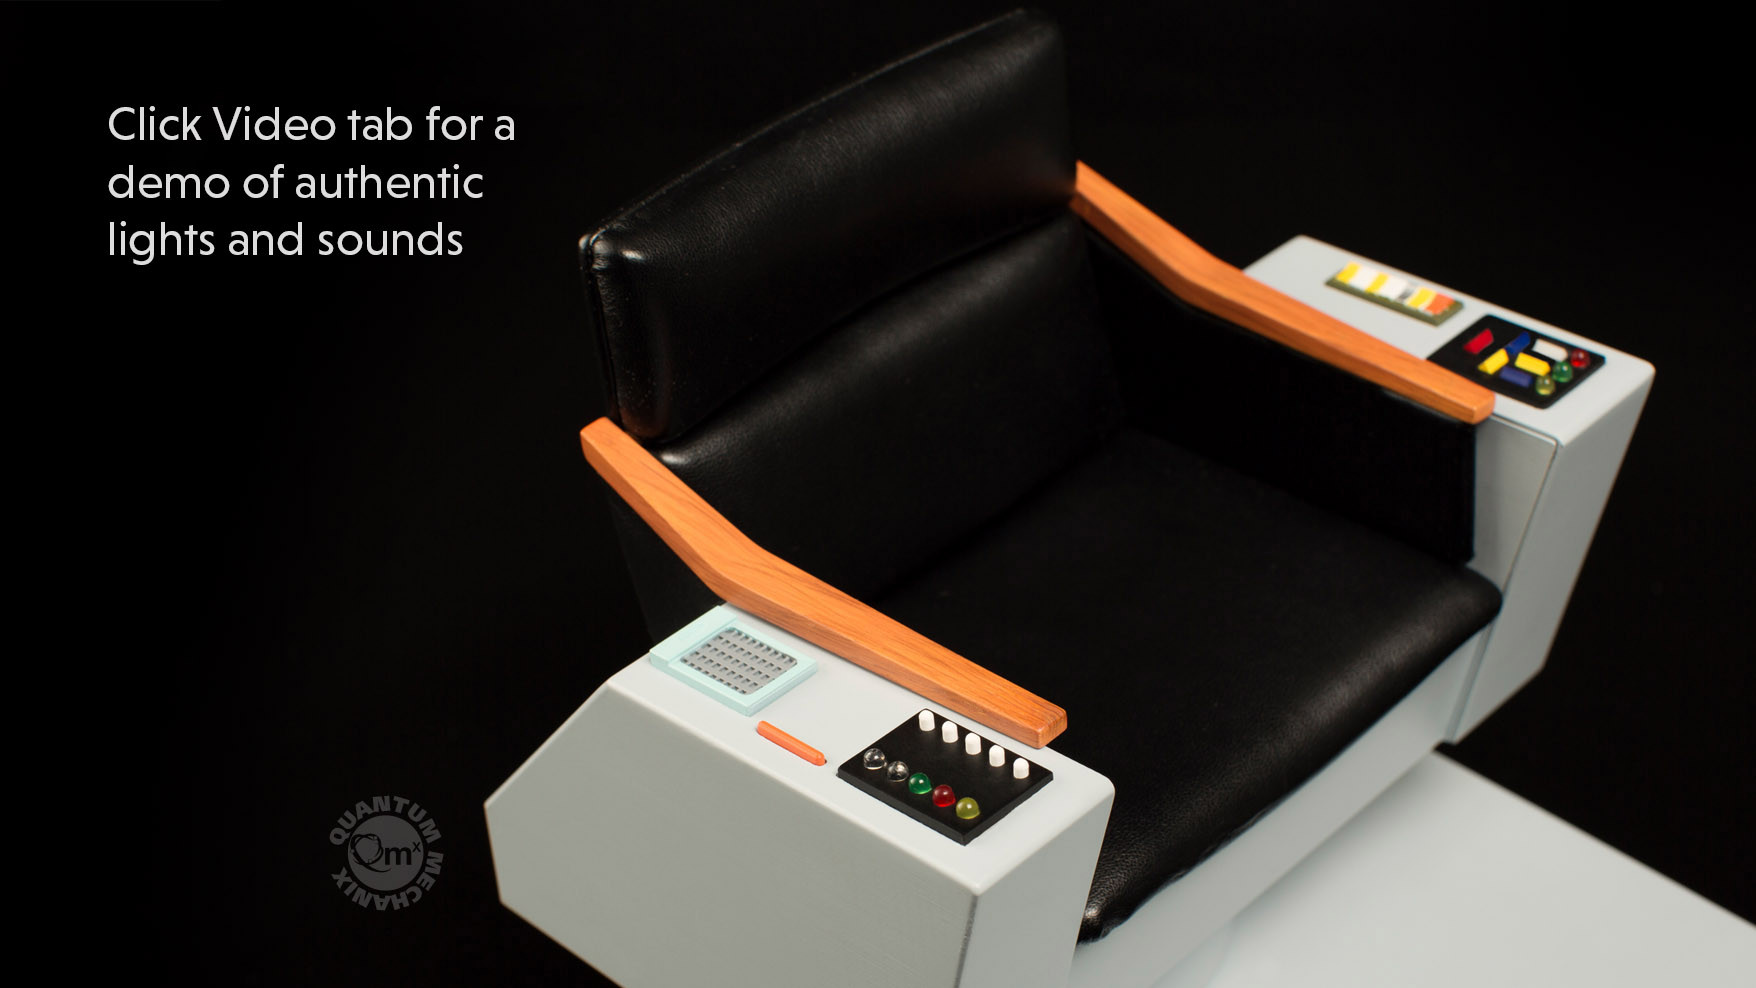 QMx is releasing the Captain Kirk's bridge chair from STAR